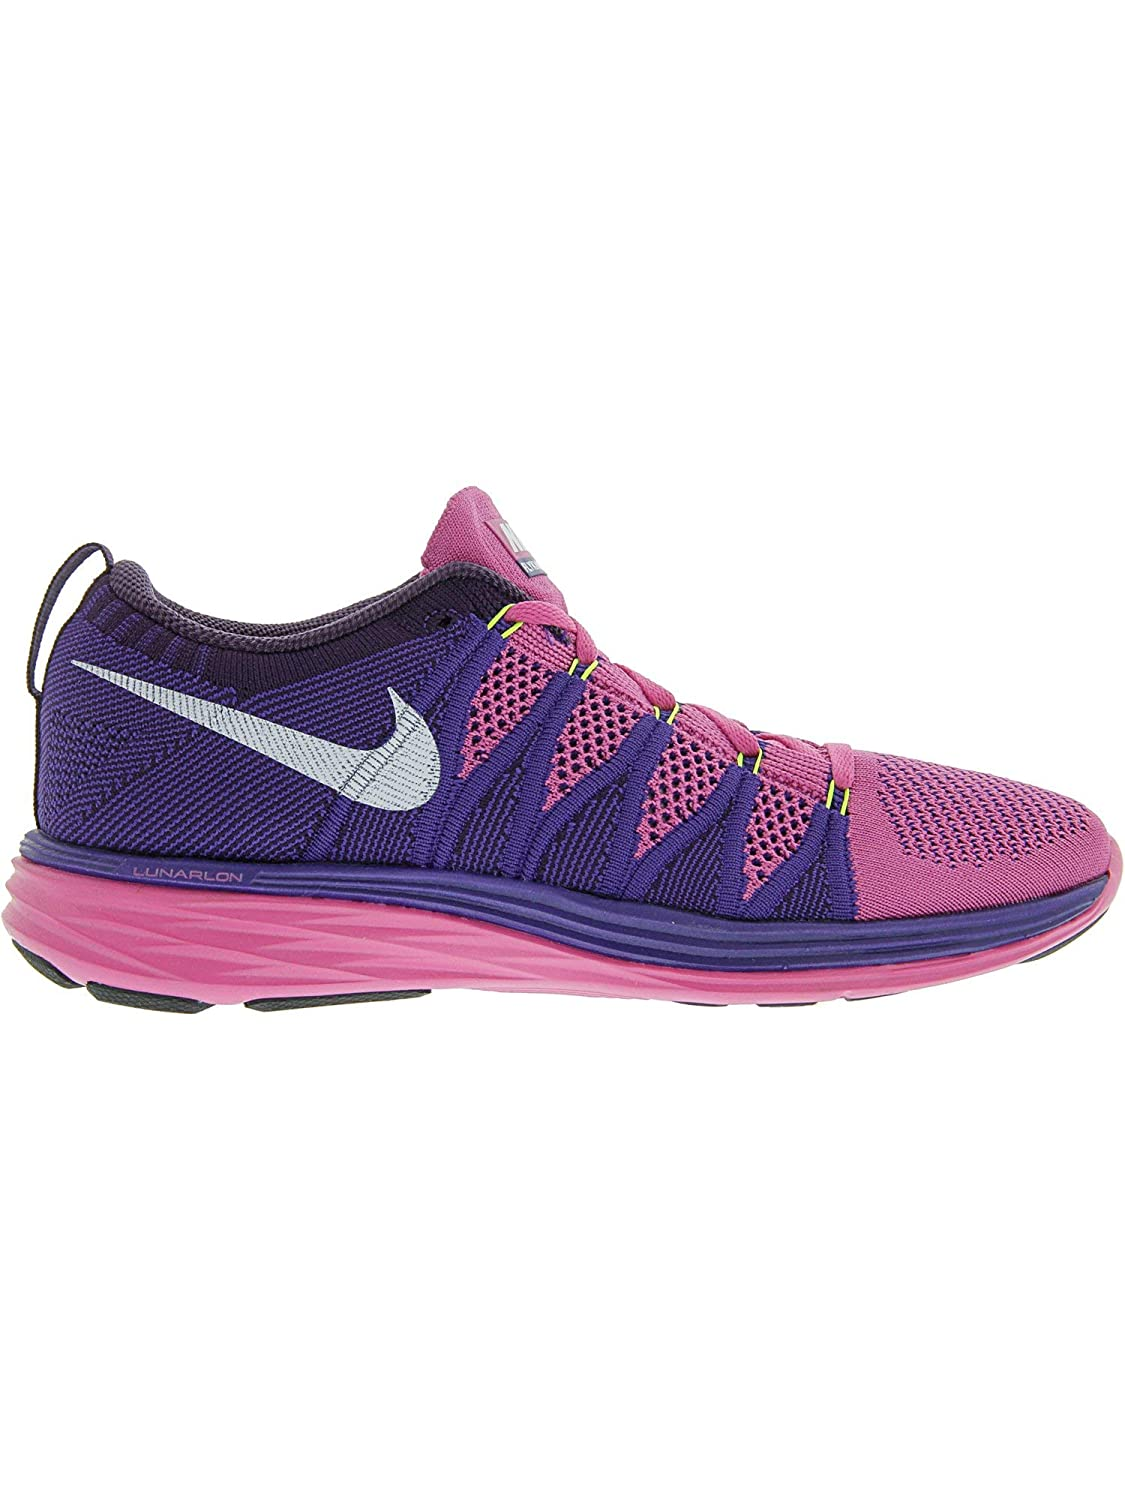 5d184d876d20 ... 50% off amazon nike womens flyknit lunar2 running training shoes road  running f9482 7ddb7